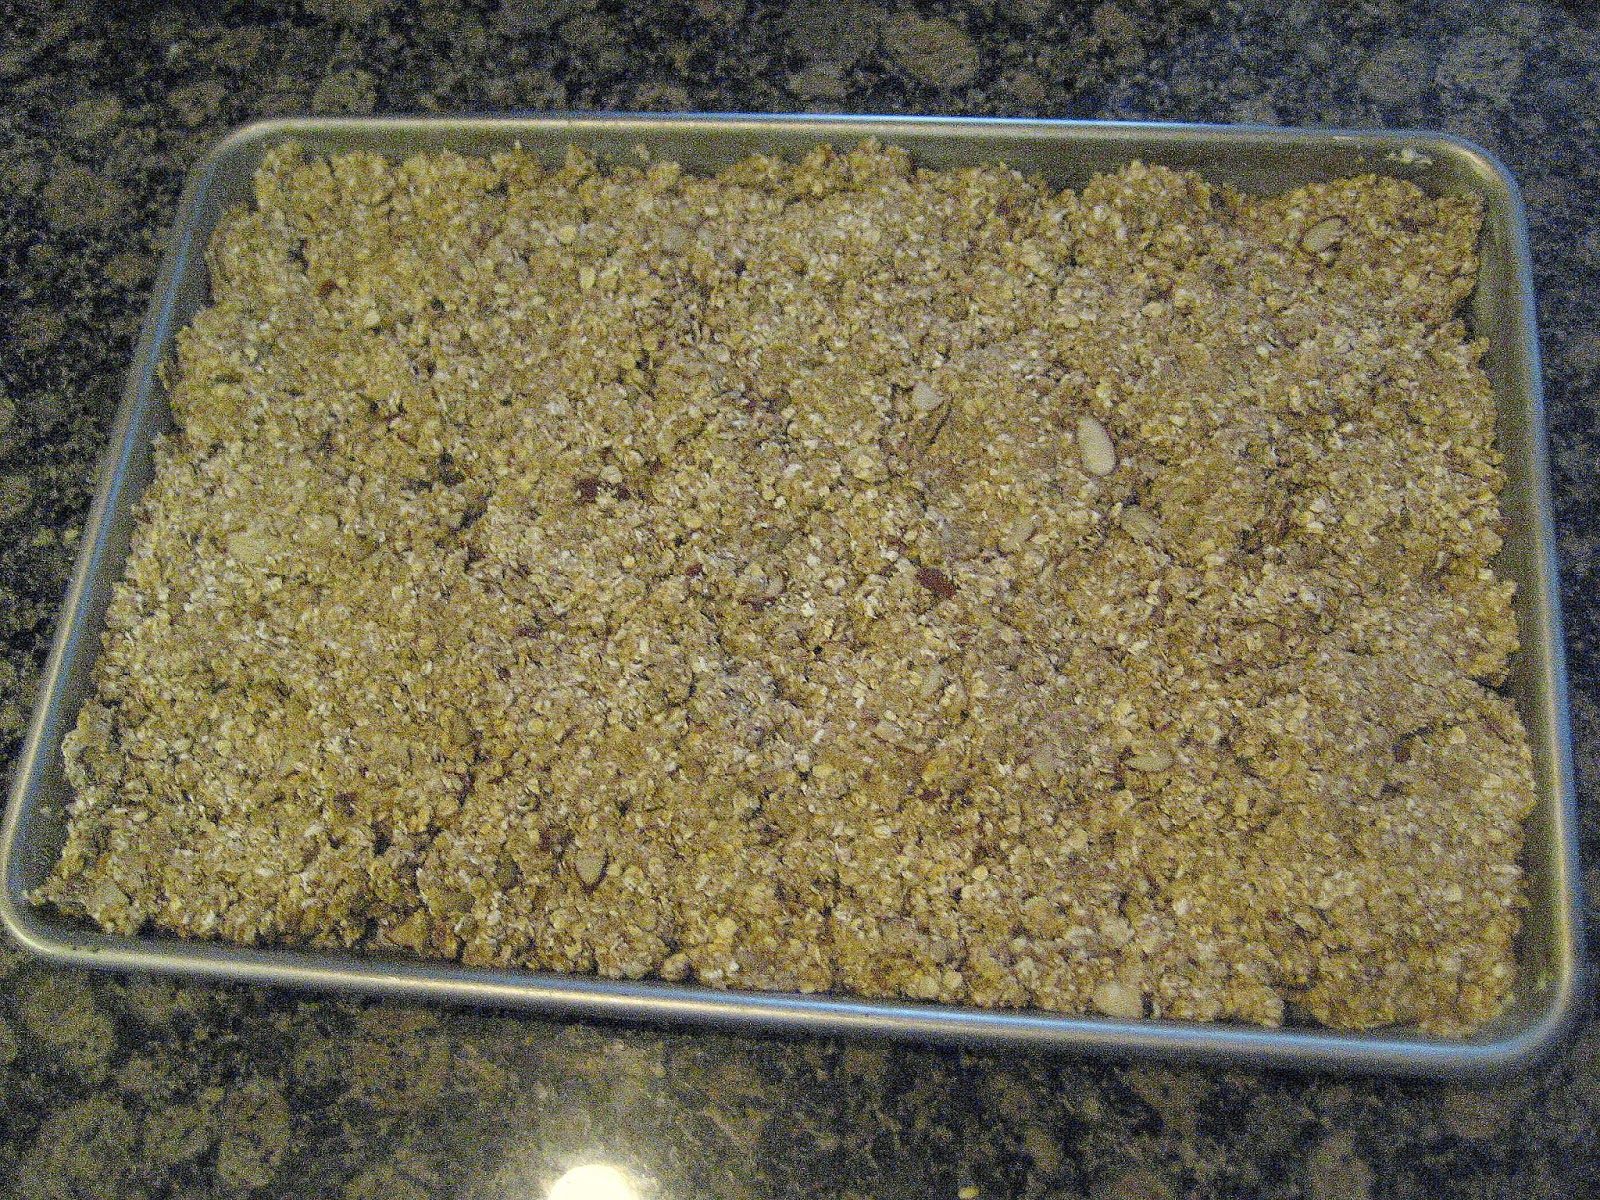 Homemade cereal, homemade granola bars, cereal, granola bar recipe, cereal recipe